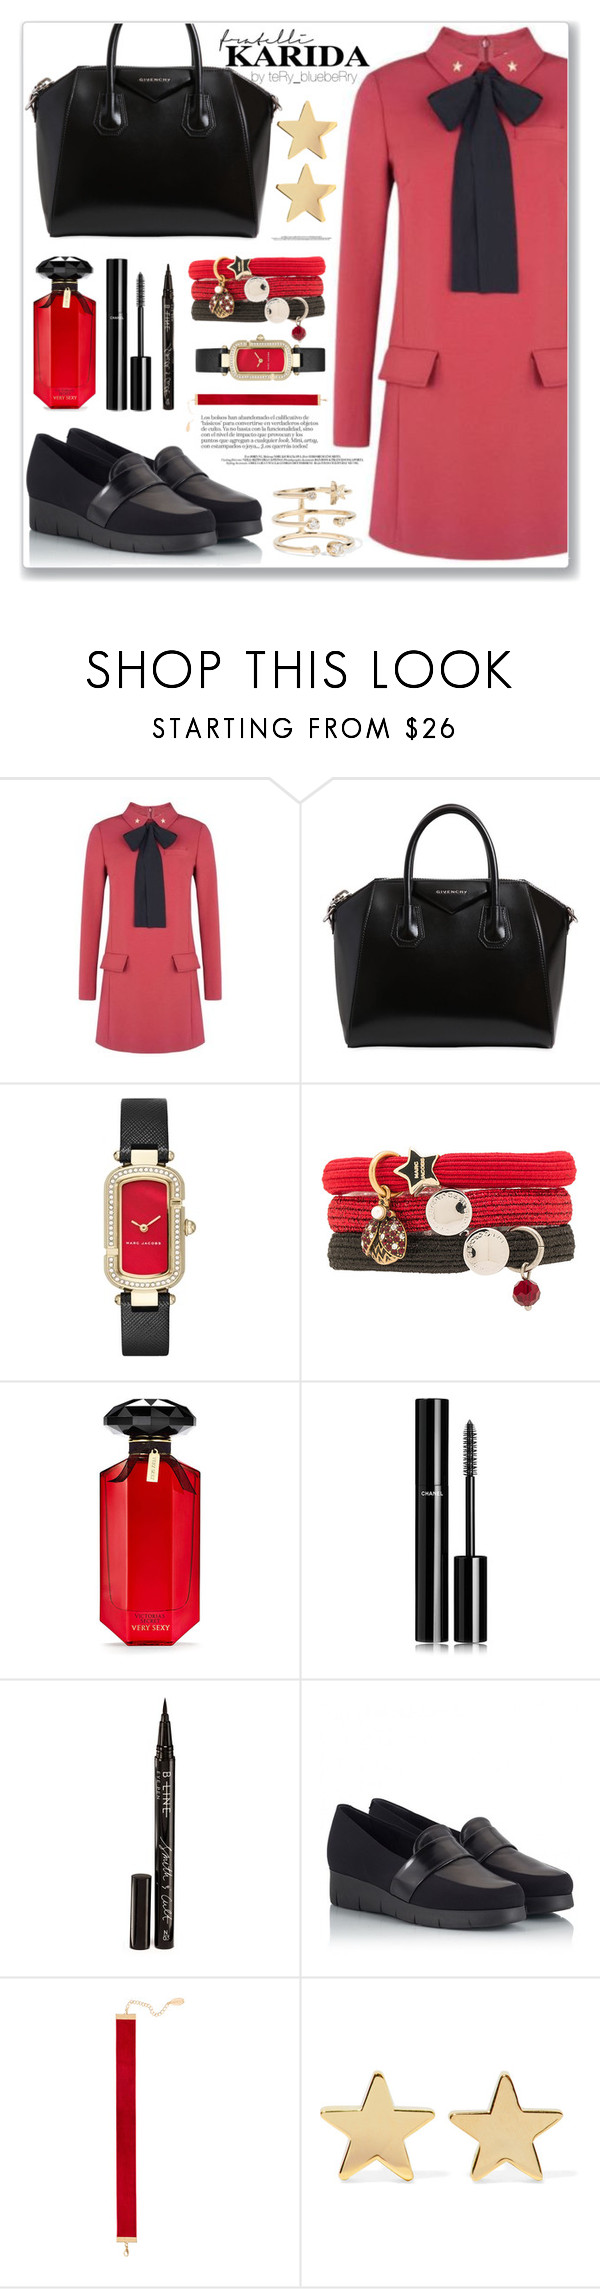 """""""Fratelli Karida: IV"""" by teryblueberry ❤ liked on Polyvore featuring RED Valentino, Givenchy, Marc Jacobs, Victoria's Secret, Chanel, Smith & Cult, PAS DE ROUGE, Chanael K, Jennifer Meyer Jewelry and Andrea Fohrman"""